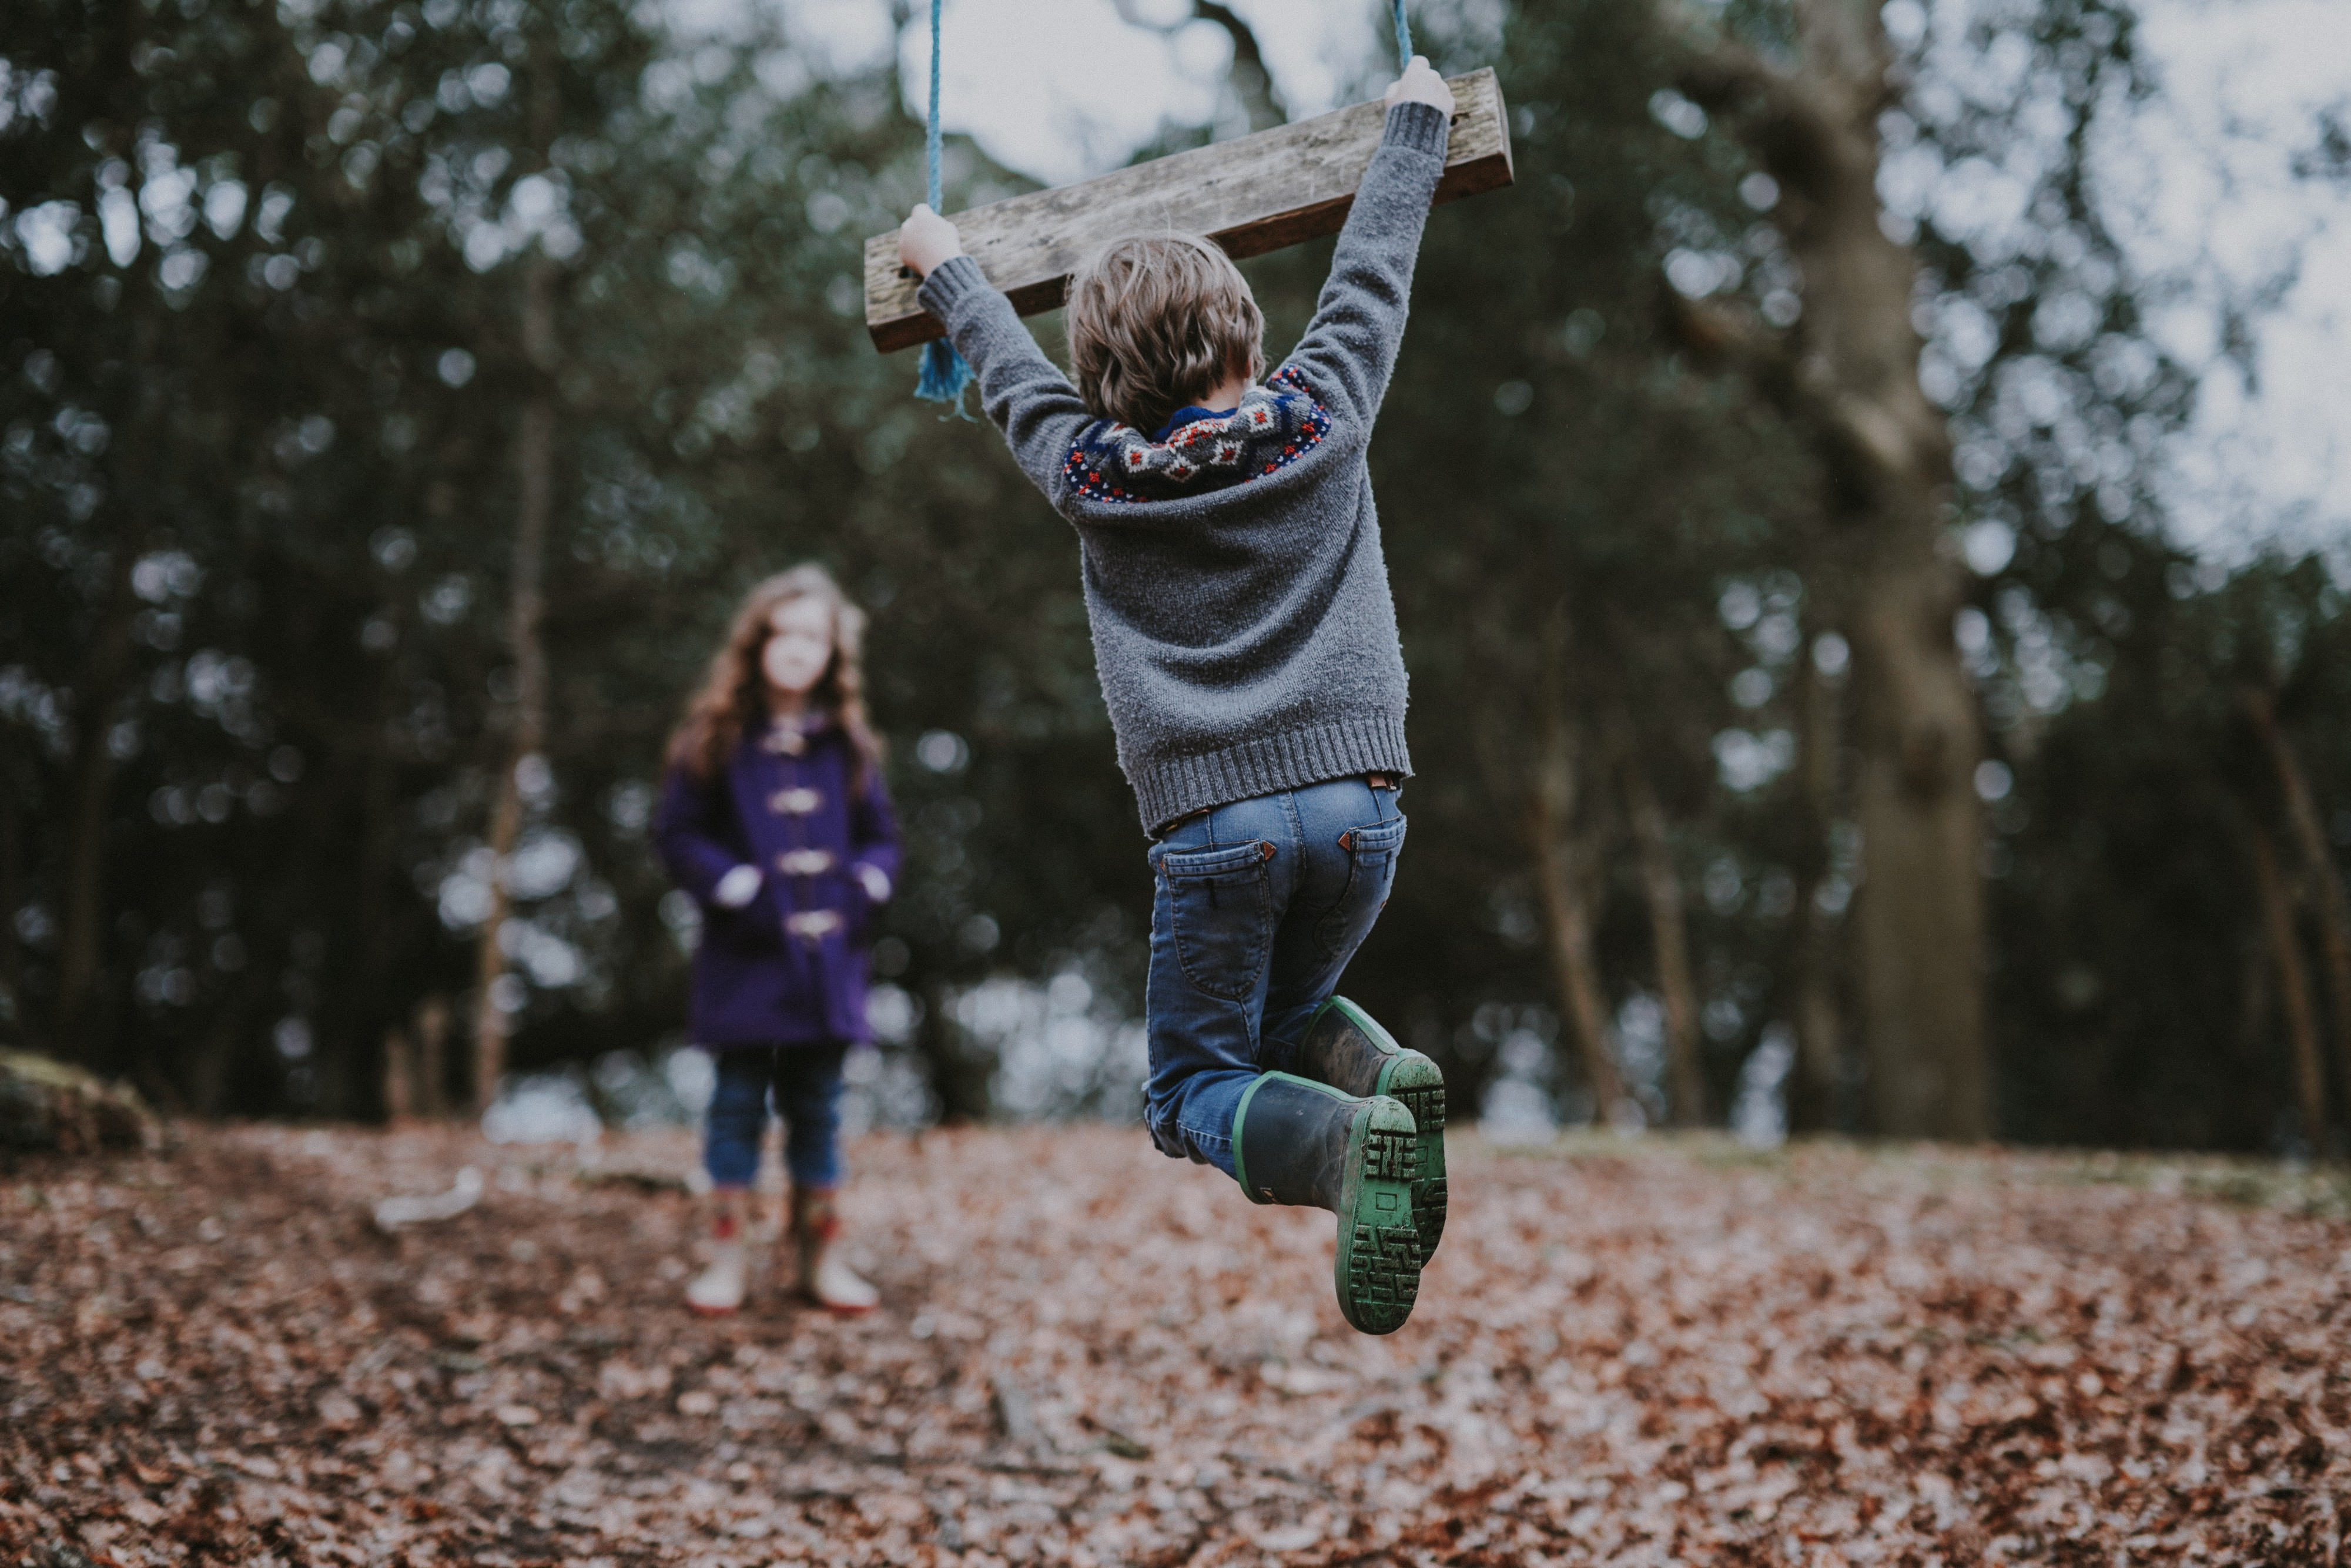 A brother swings on a wooden swing, above a path full of crisp autumn leaves. In the distance is his sister, hands in pocket, watching.